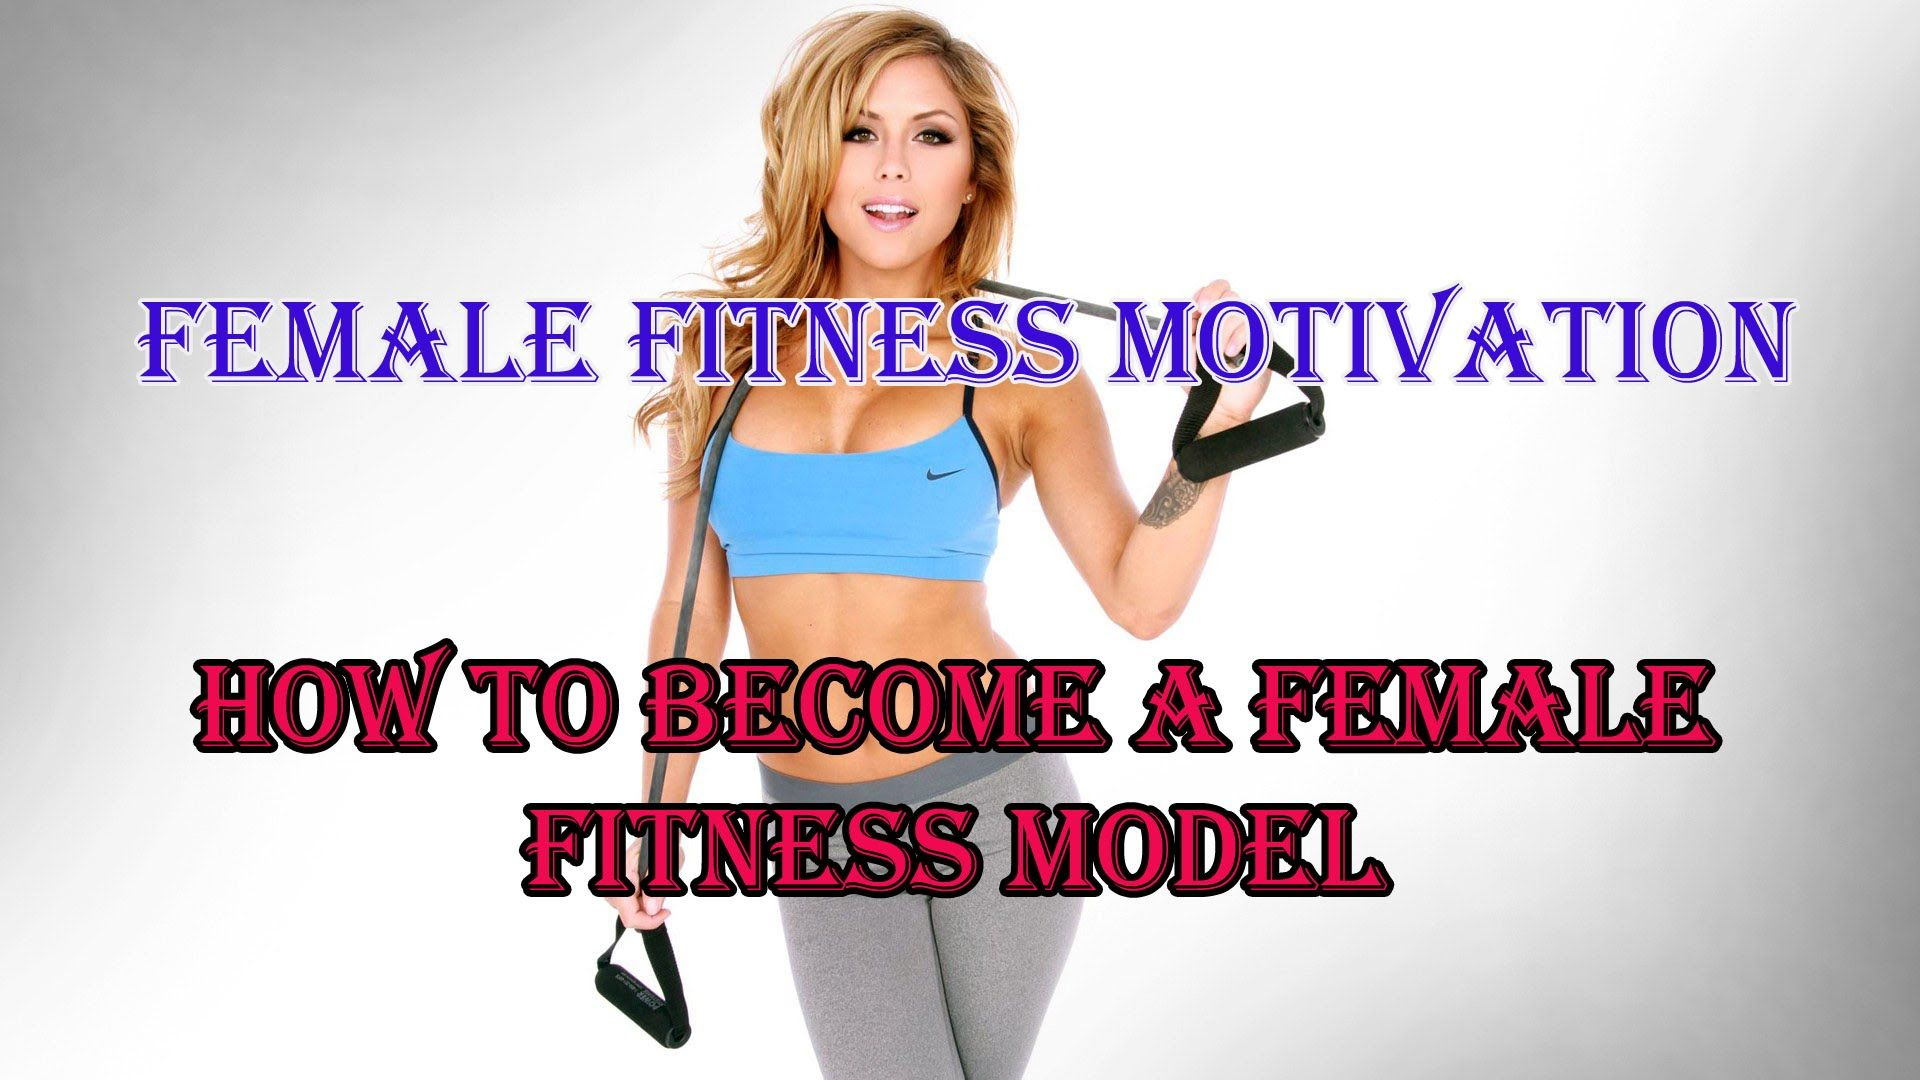 Female Fitness Motivation How To Become A Fitness Model Secret Steps Workout Motivation Women Become A Fitness Model Fitness Motivation